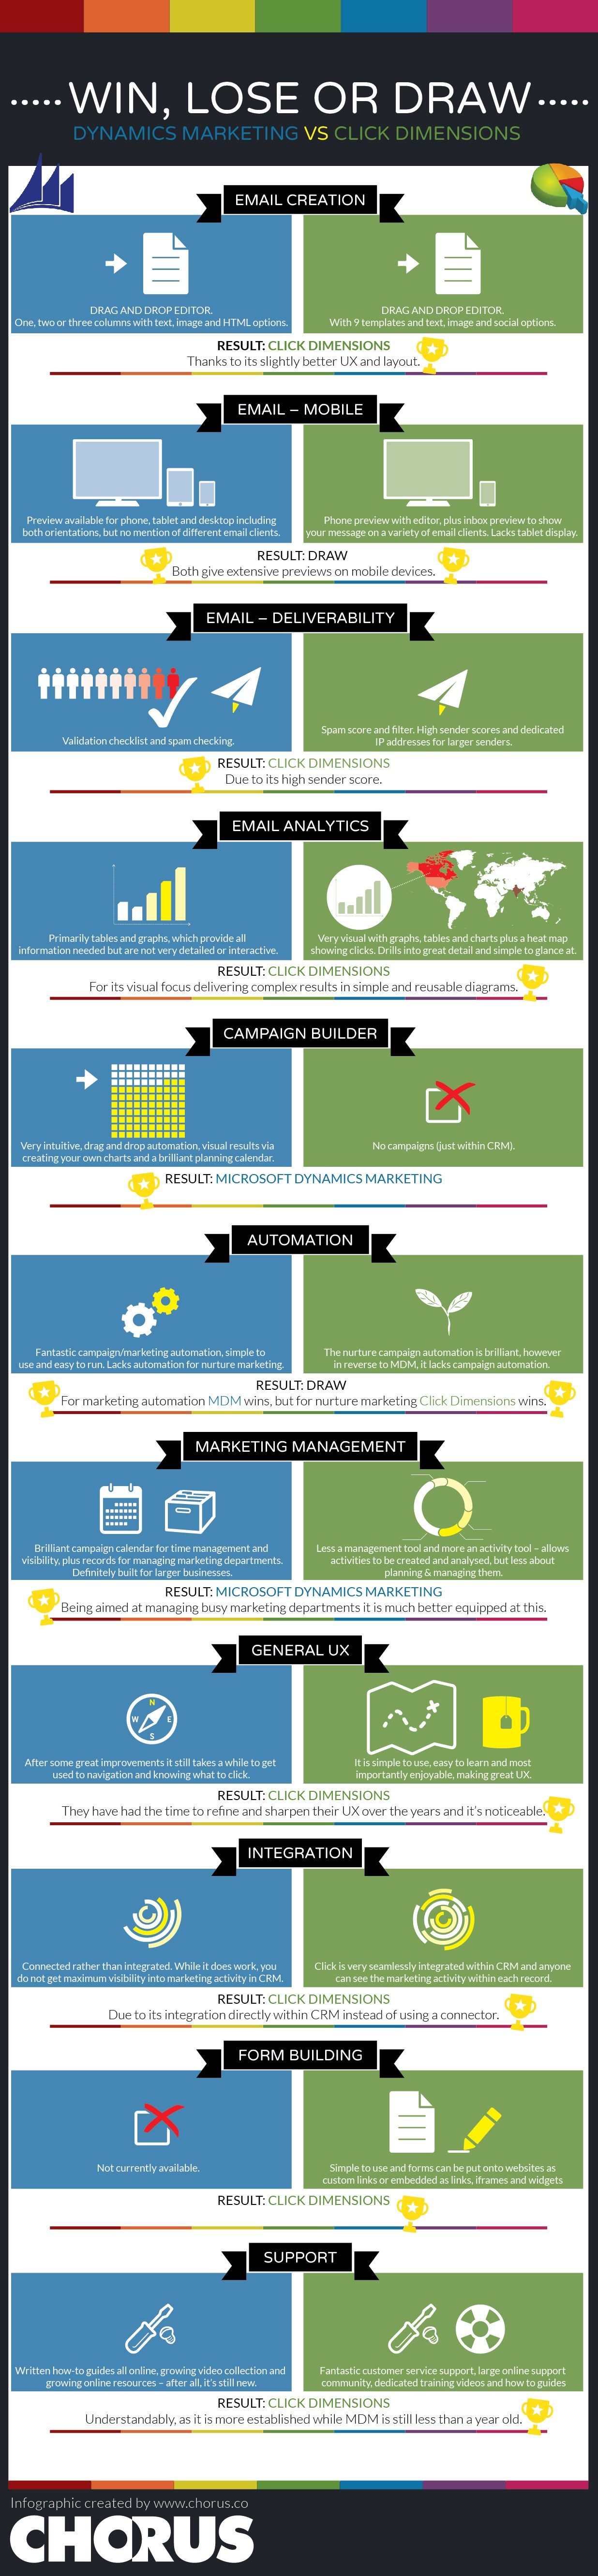 Microsoft Dynamics Marketing vs Click Dimensions Infographic